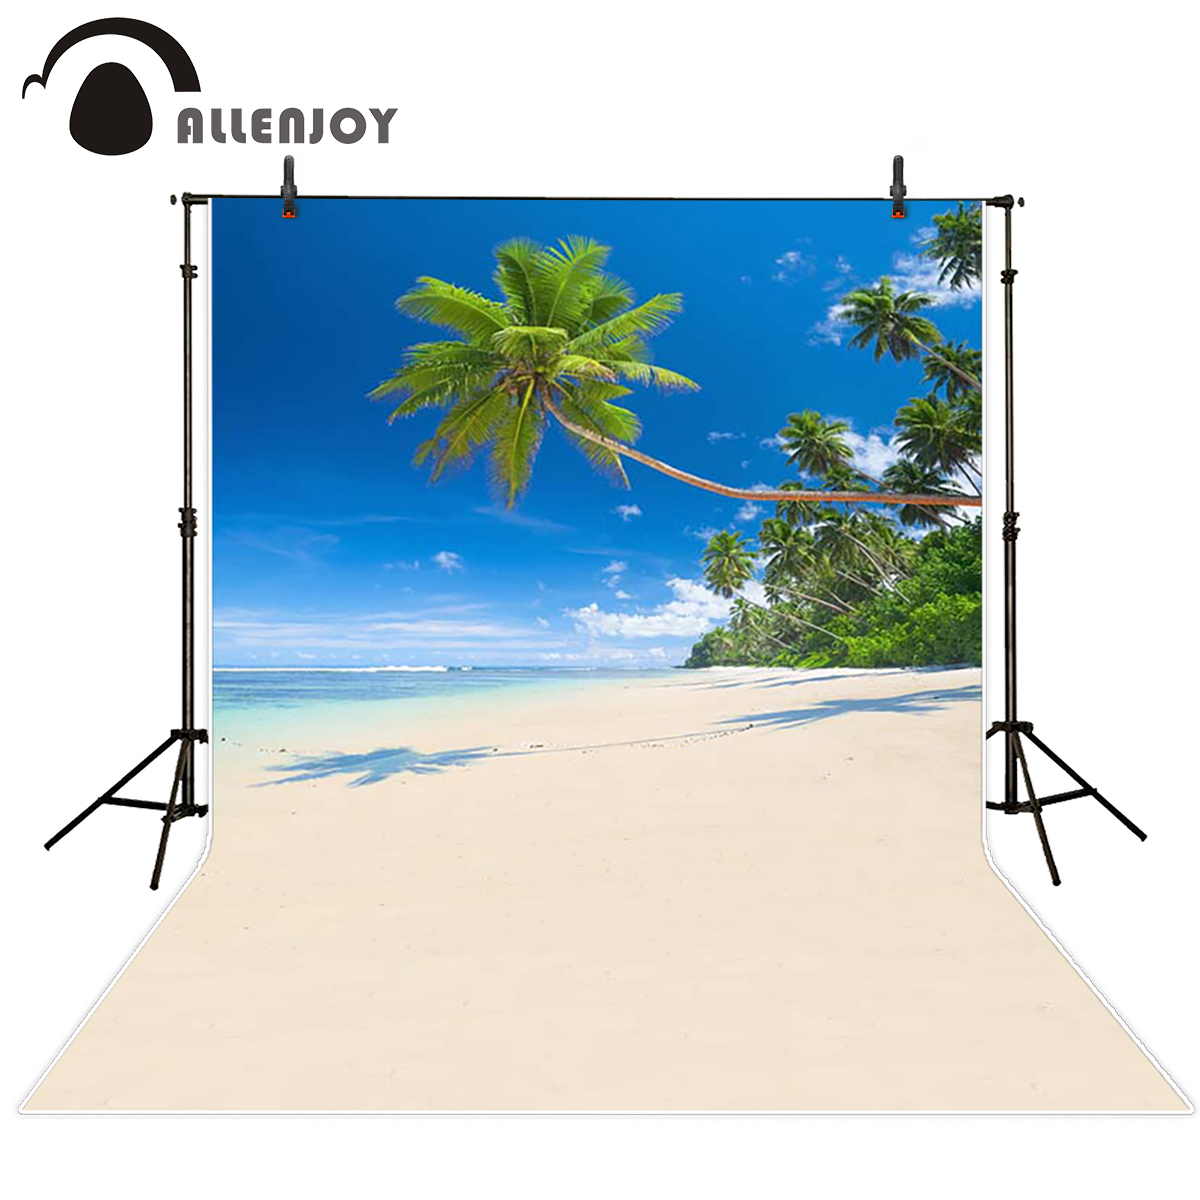 Allenjoy scenery photo backdrop Summer trip island forest coconut tree beach photocall the cloth backgrounds for photo studio